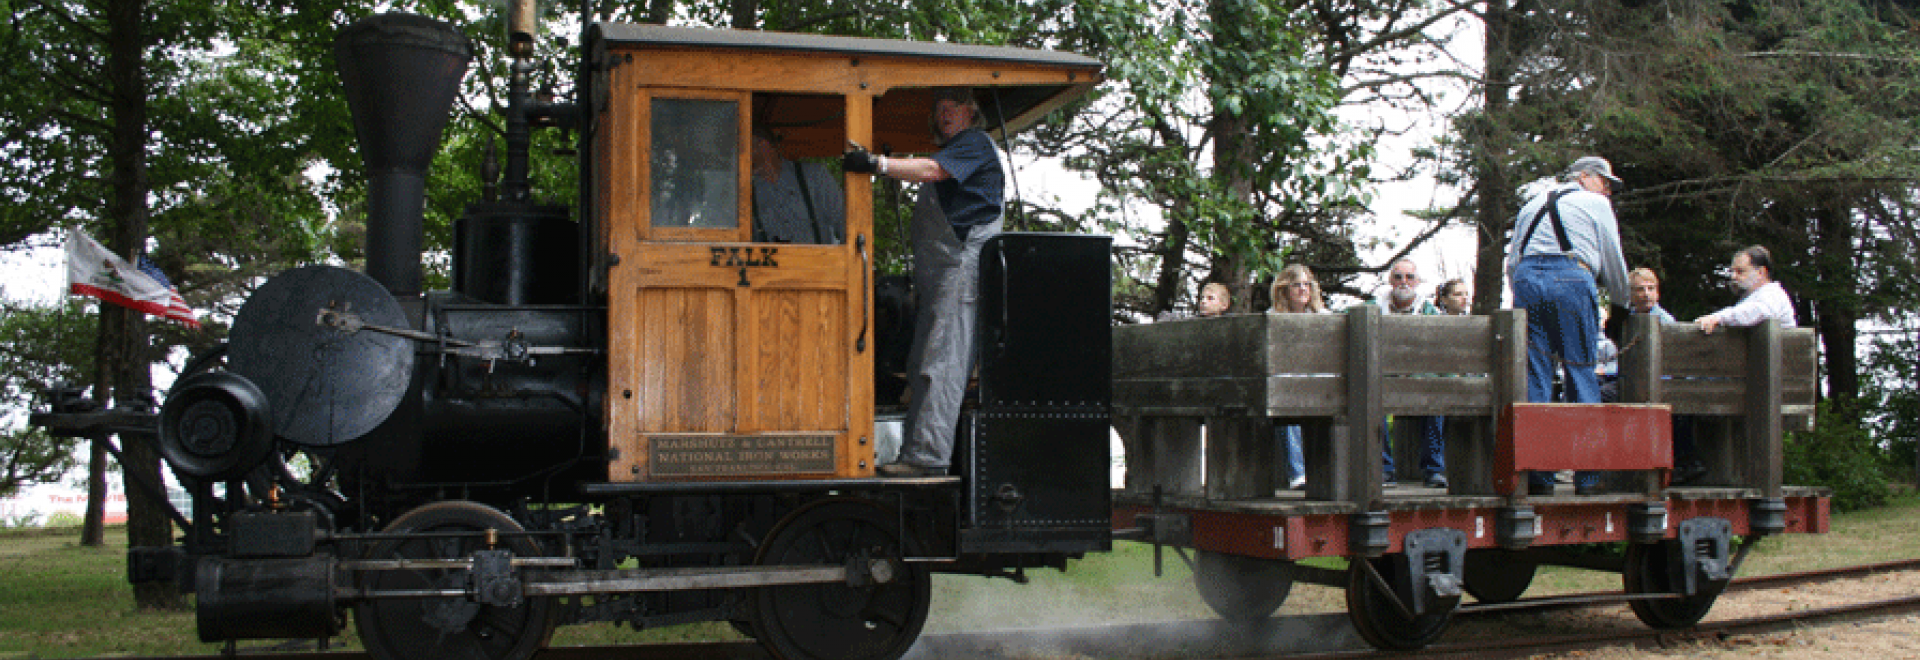 Falk is a small steam powered locomotive used in the late 19th century to move logs in the lumber yards